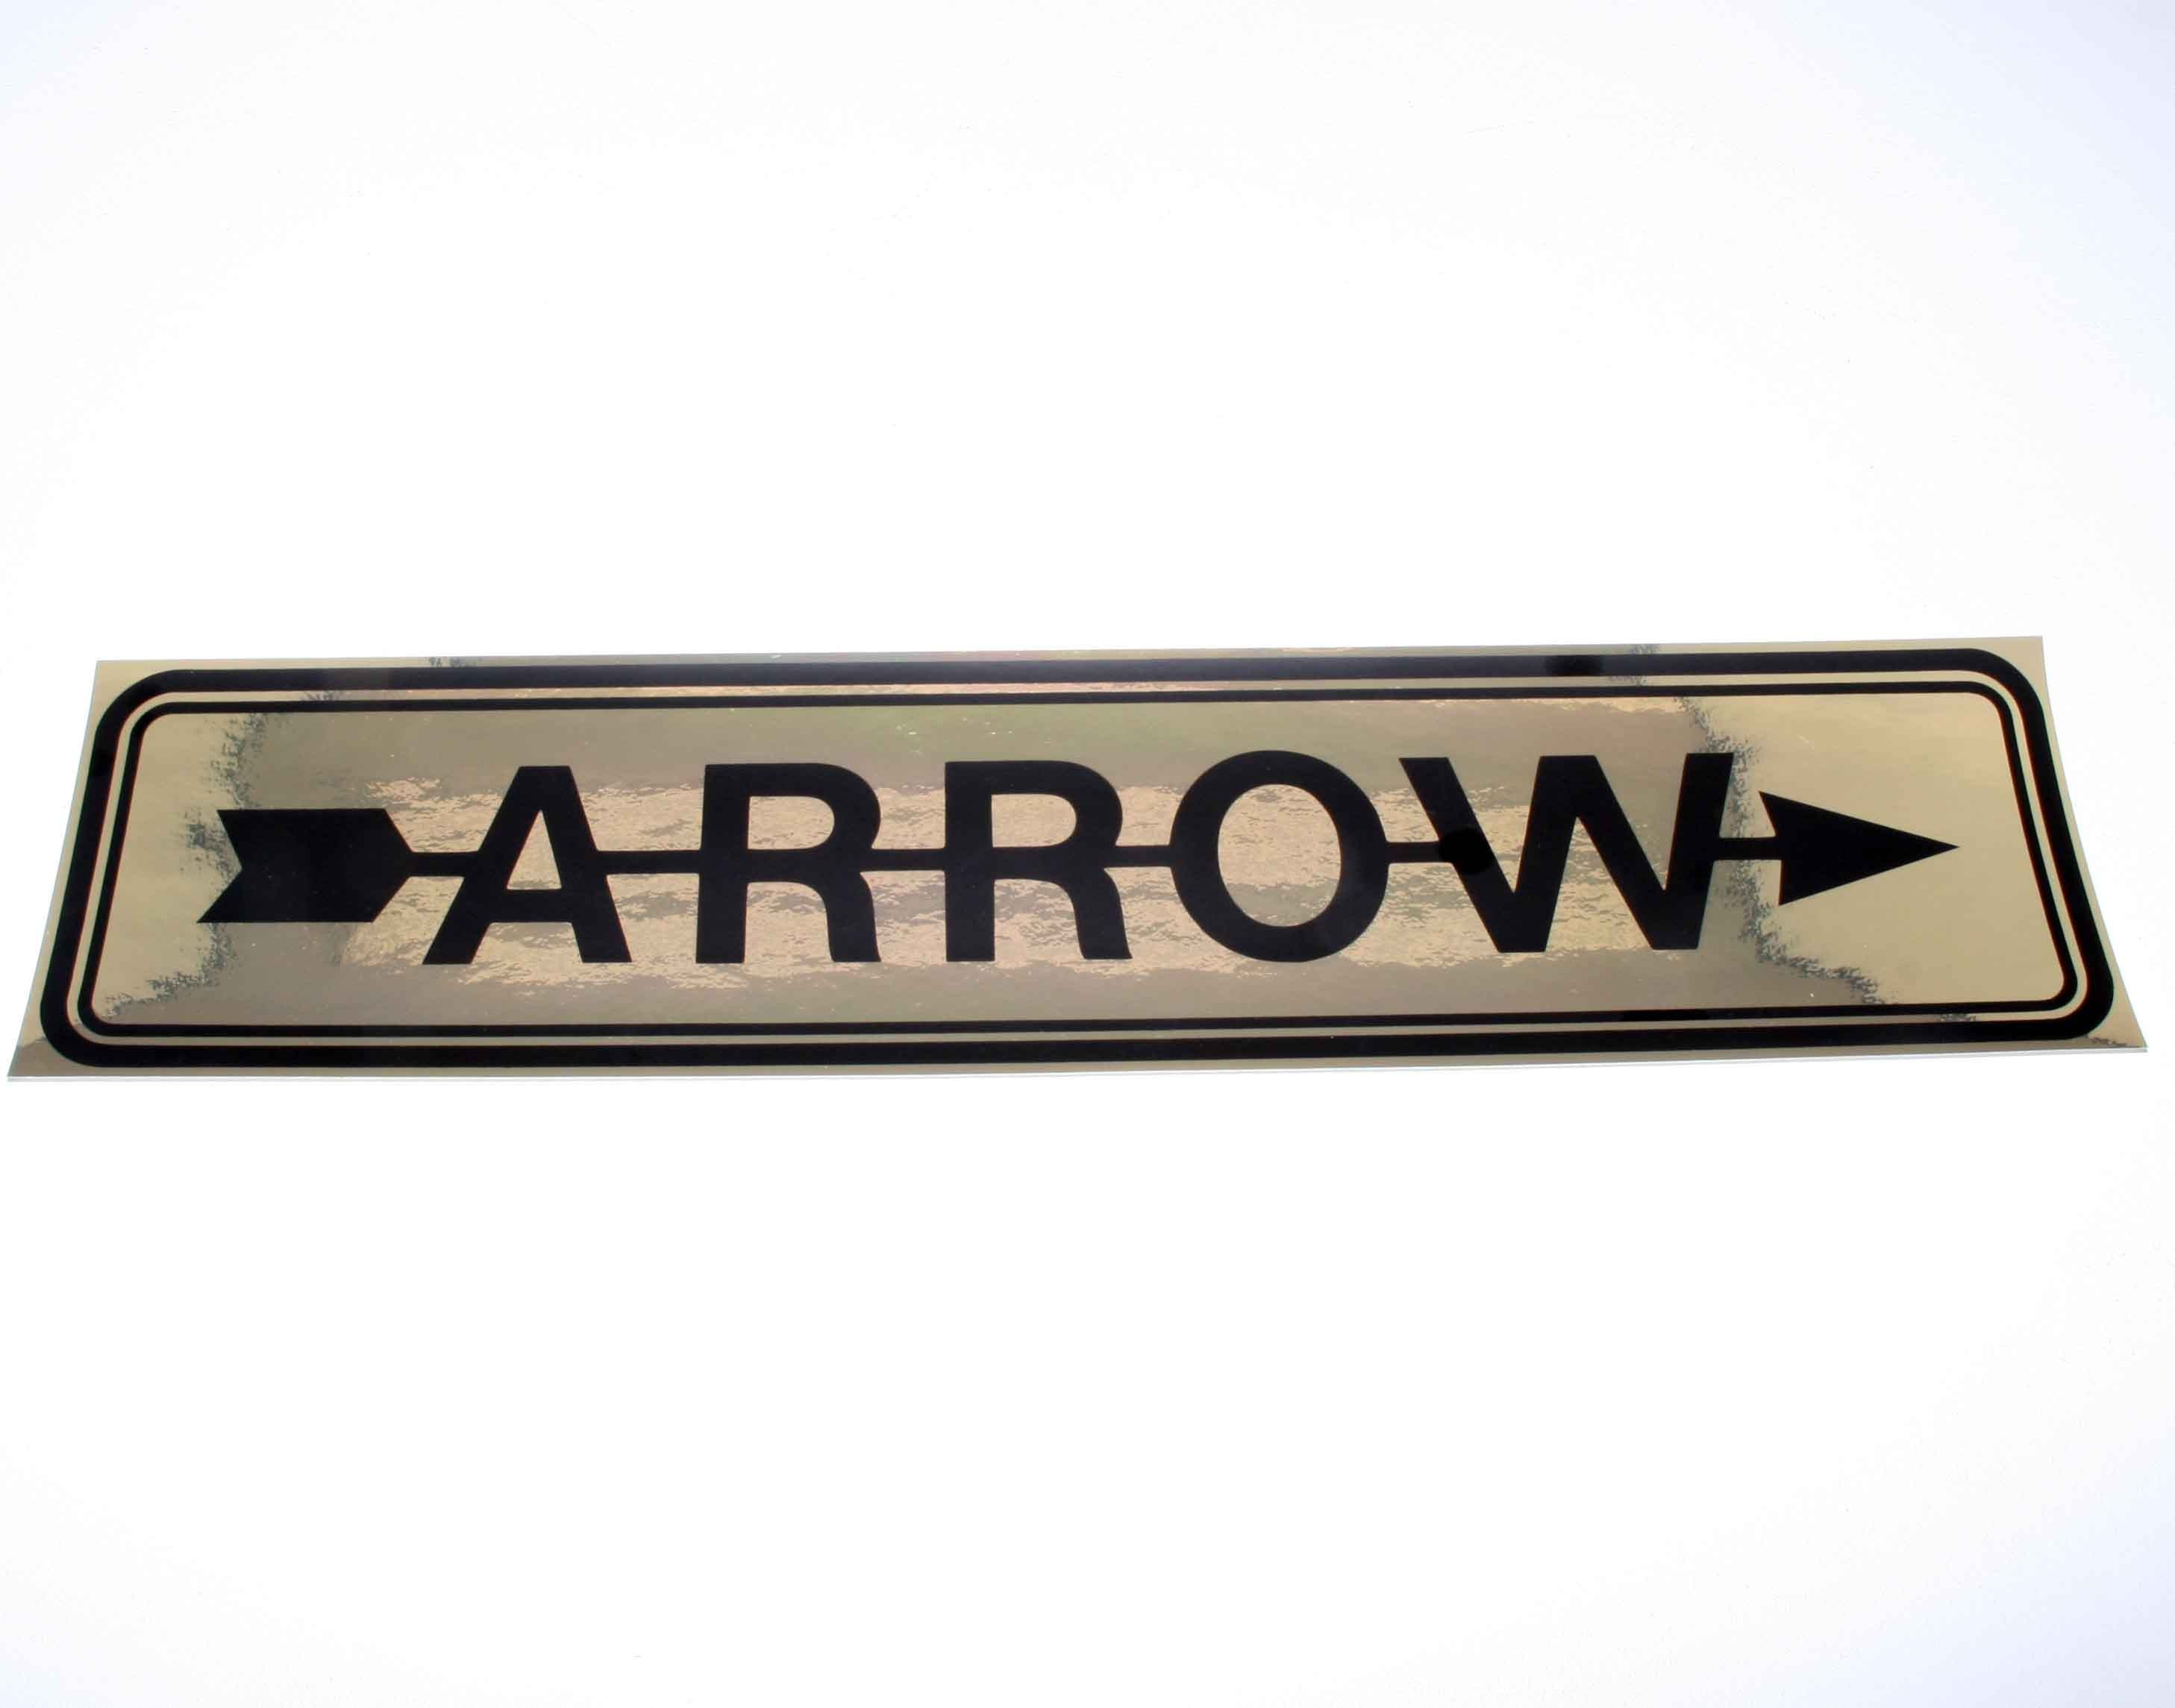 ARROW STICKER DECAL 600 x 140